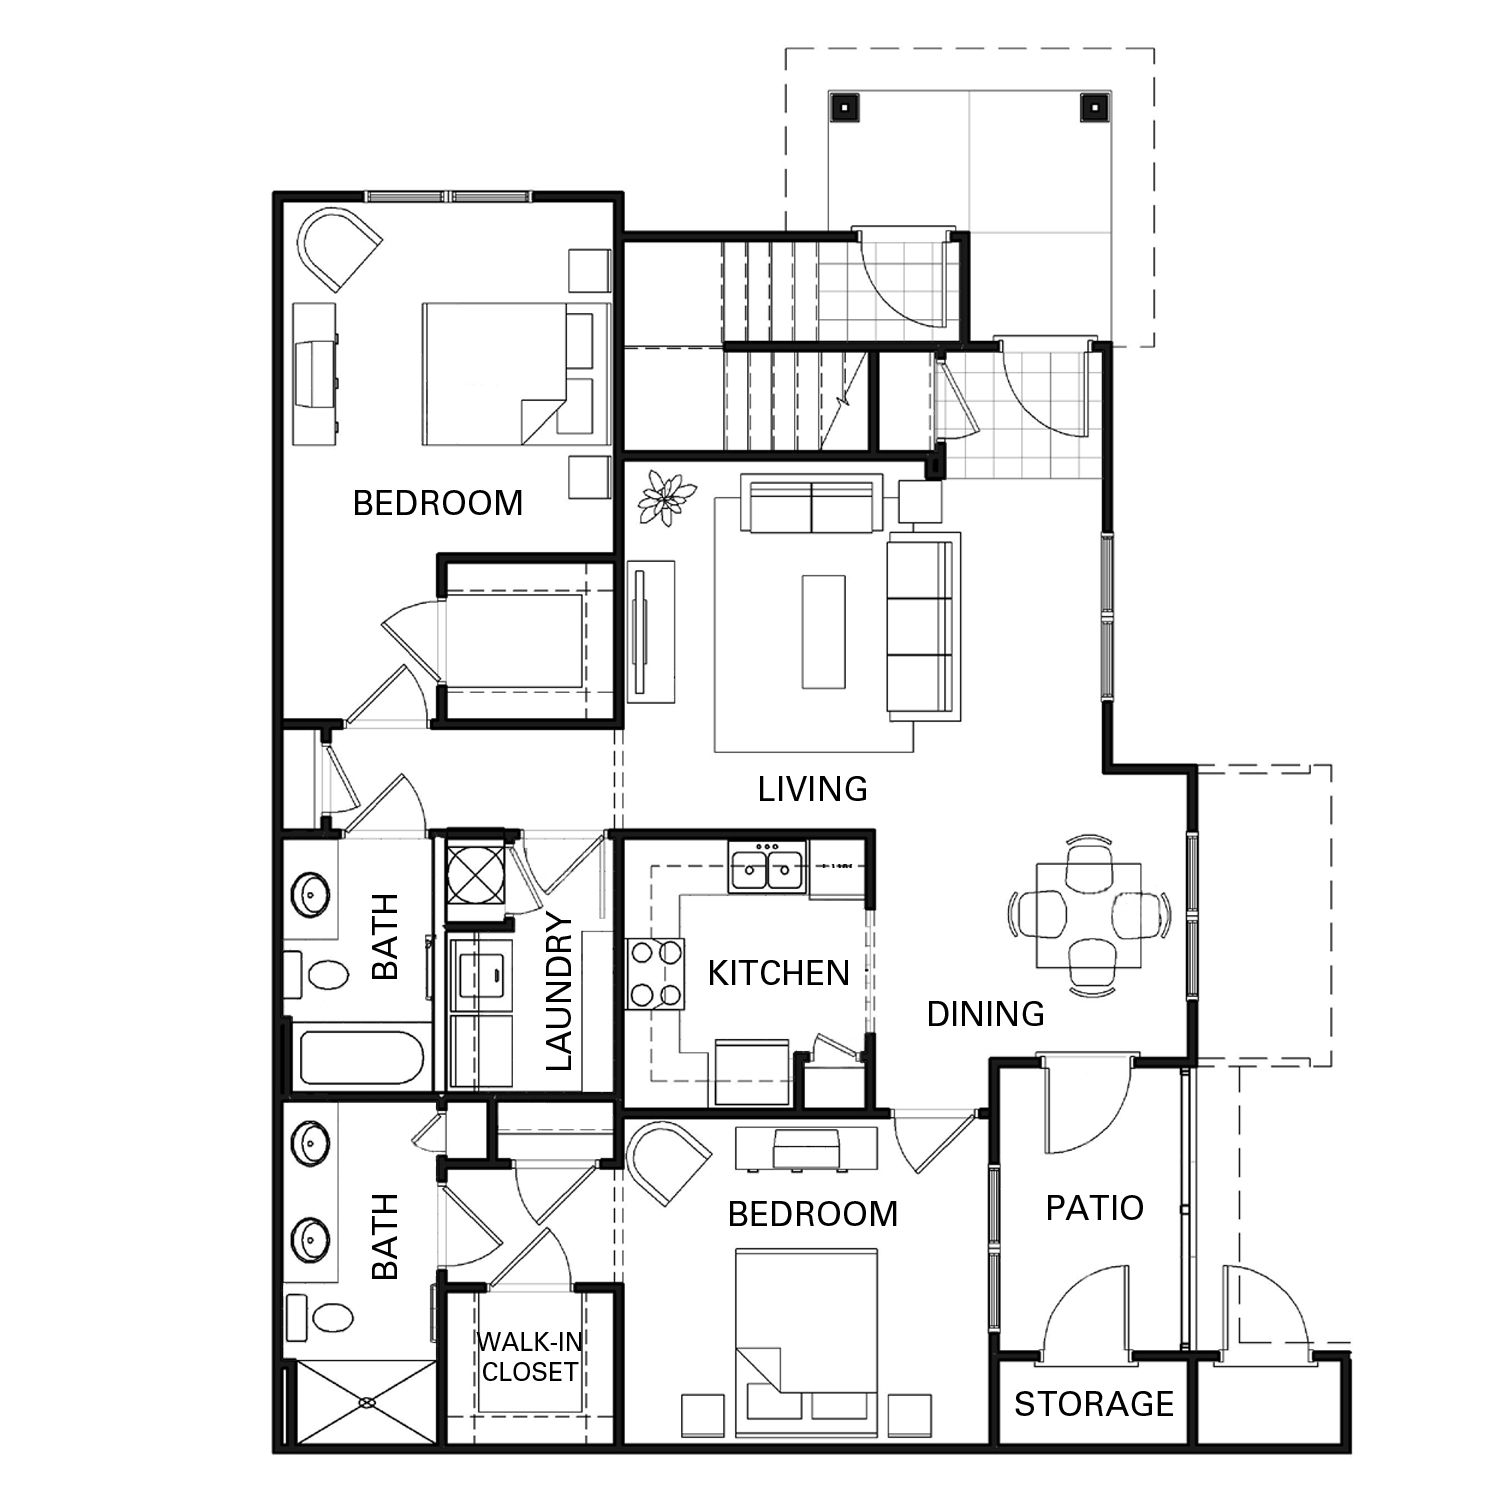 Two bedroom two bathroom B1 floorplan at The Apartments at Blakeney in Charlotte, NC